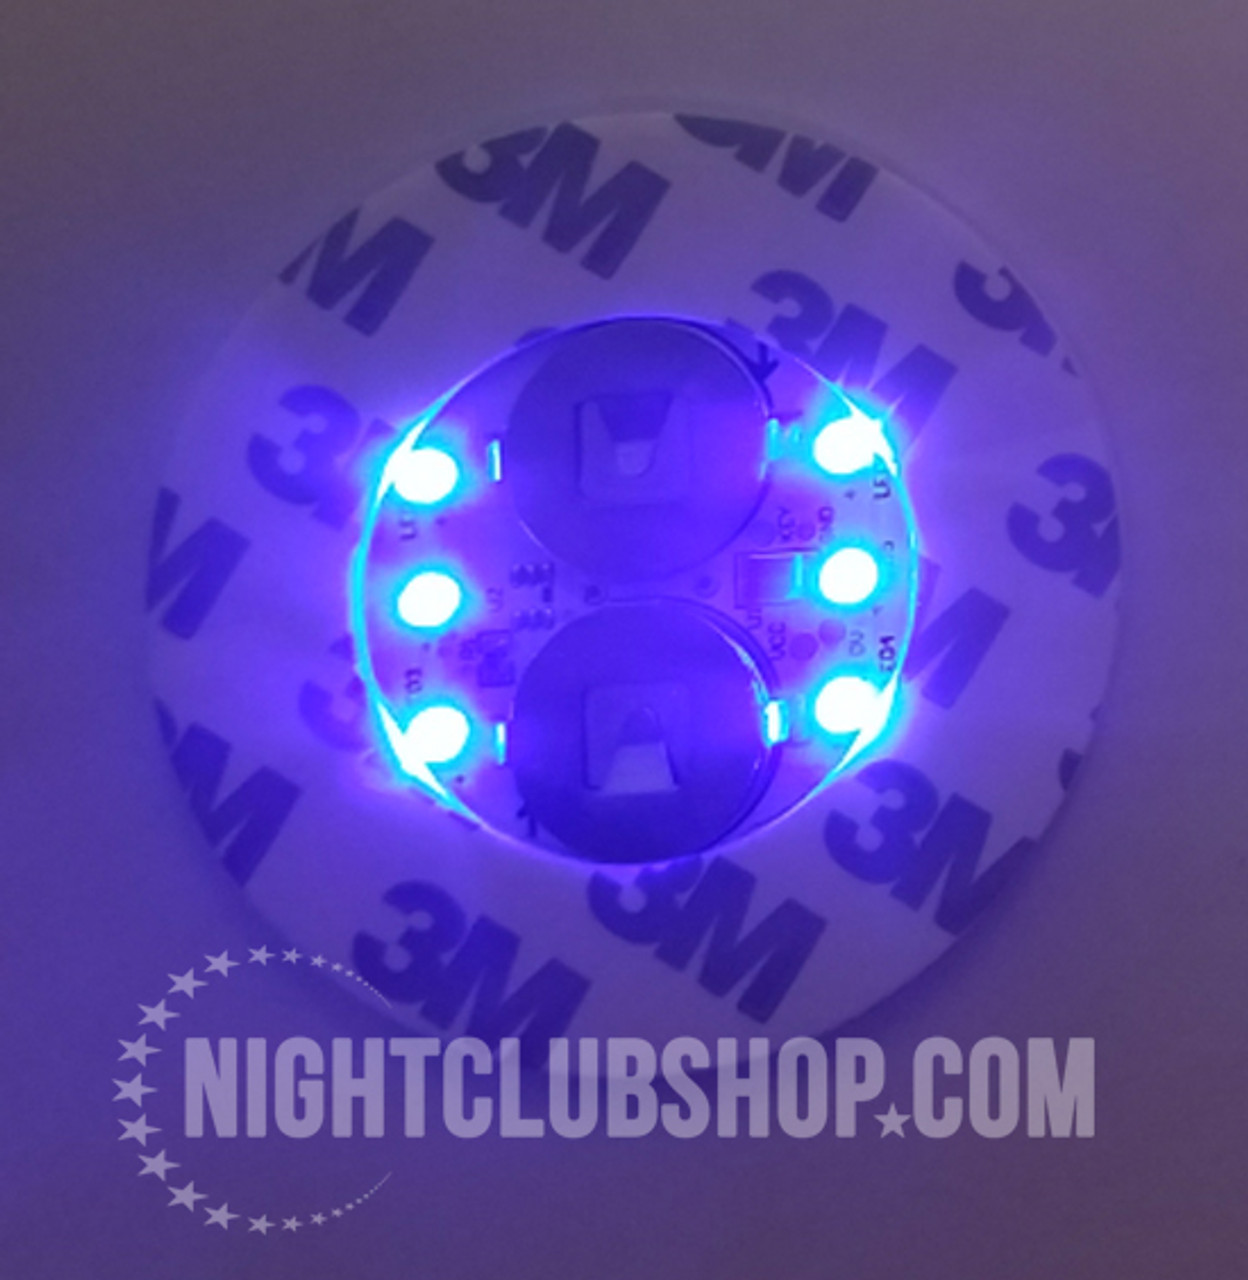 LED,Stick on, Bottle, Glow, Light pad, Sticker,Coaster, Glorifier,coaster, bar bulk, bar, bulk, LED Glow, Light up, Champagne, Liquor, bottles, Bottle Service, Mini-glow glorifier, illuminted, Blue, Blue LED